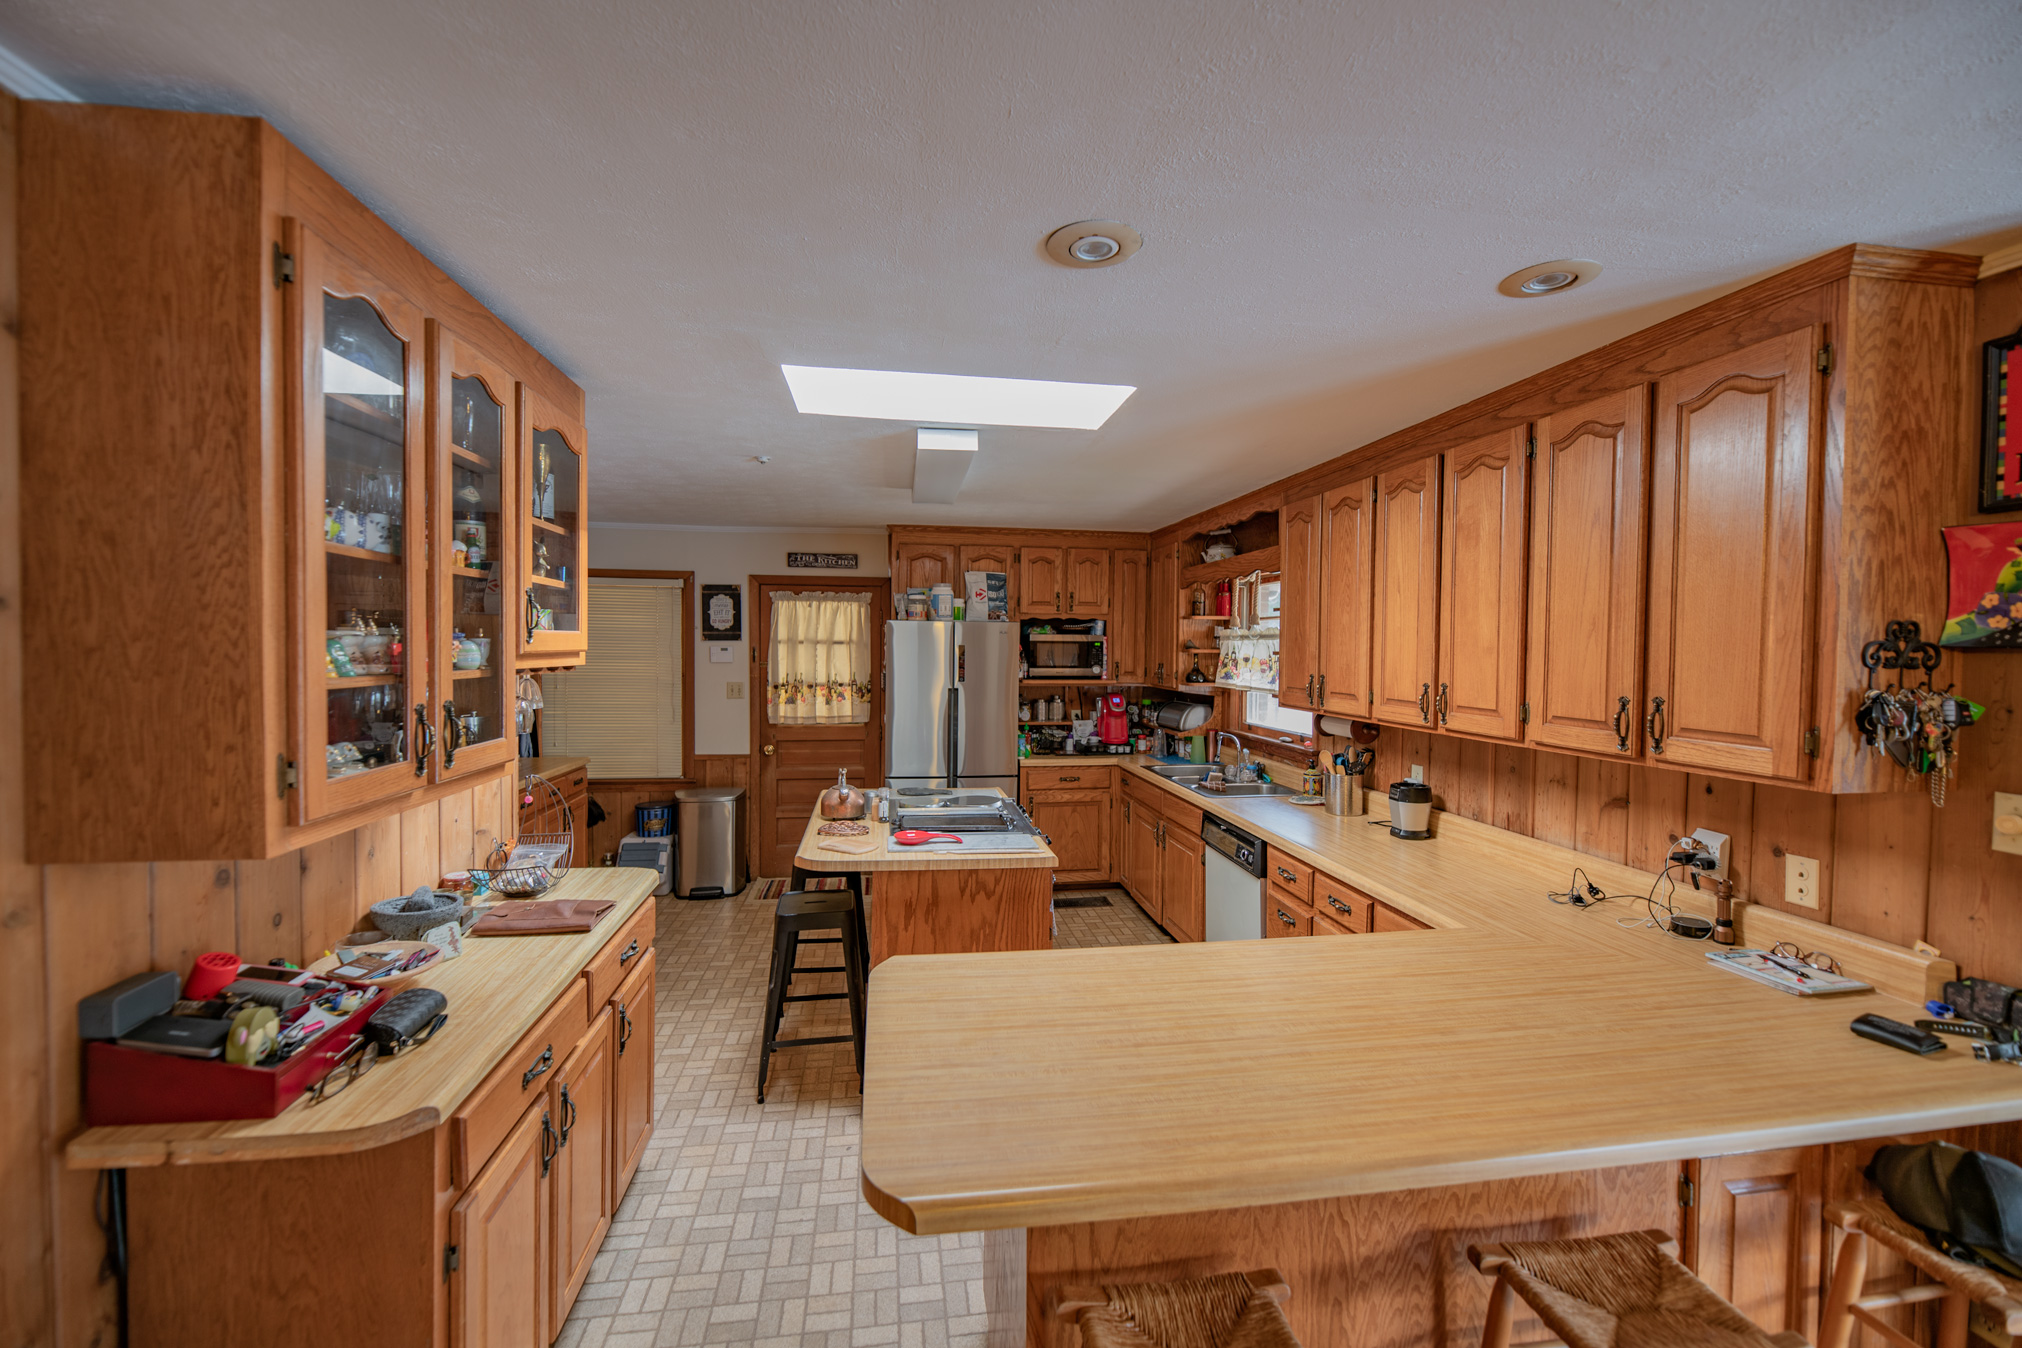 3-rivers-realty,3rr,911-morningside-drive,bainbridge-real-estate,bainbridggarealestate,mills-brock,three-rivers-realty,kitchen2.jpg